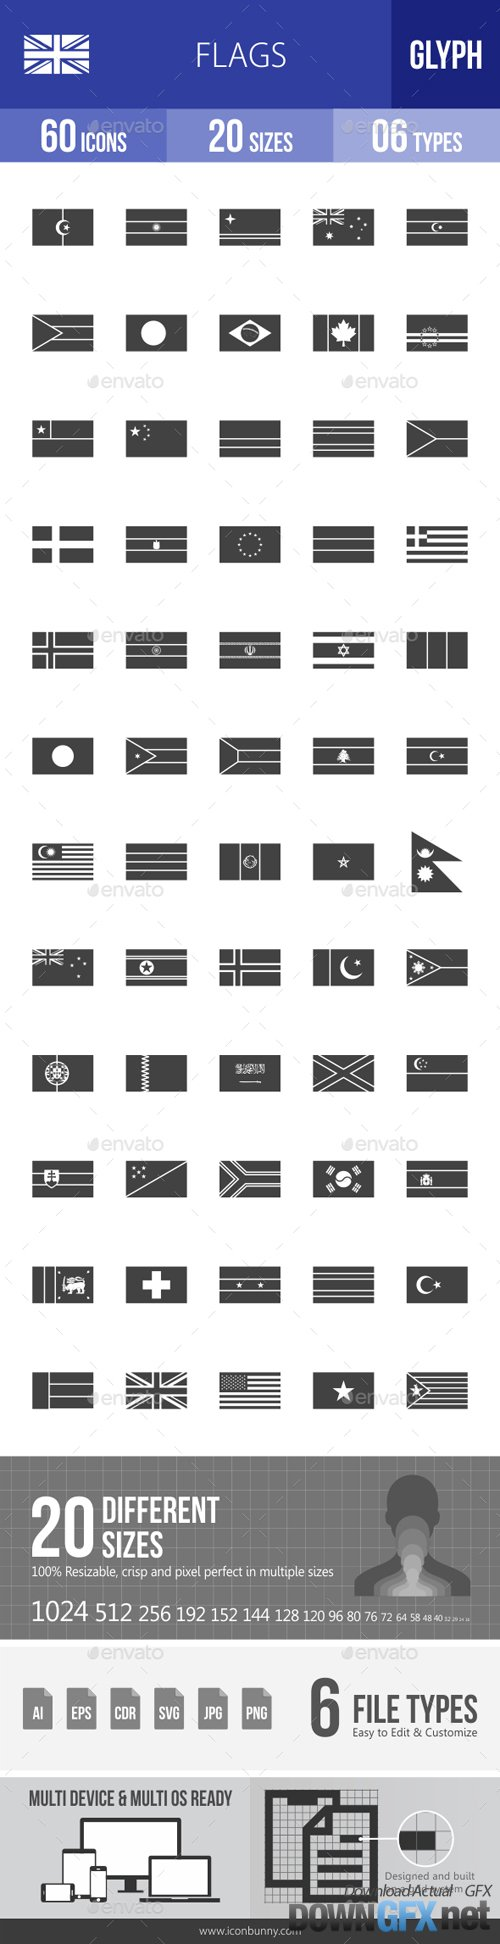 Flags Glyph Icons 18210000